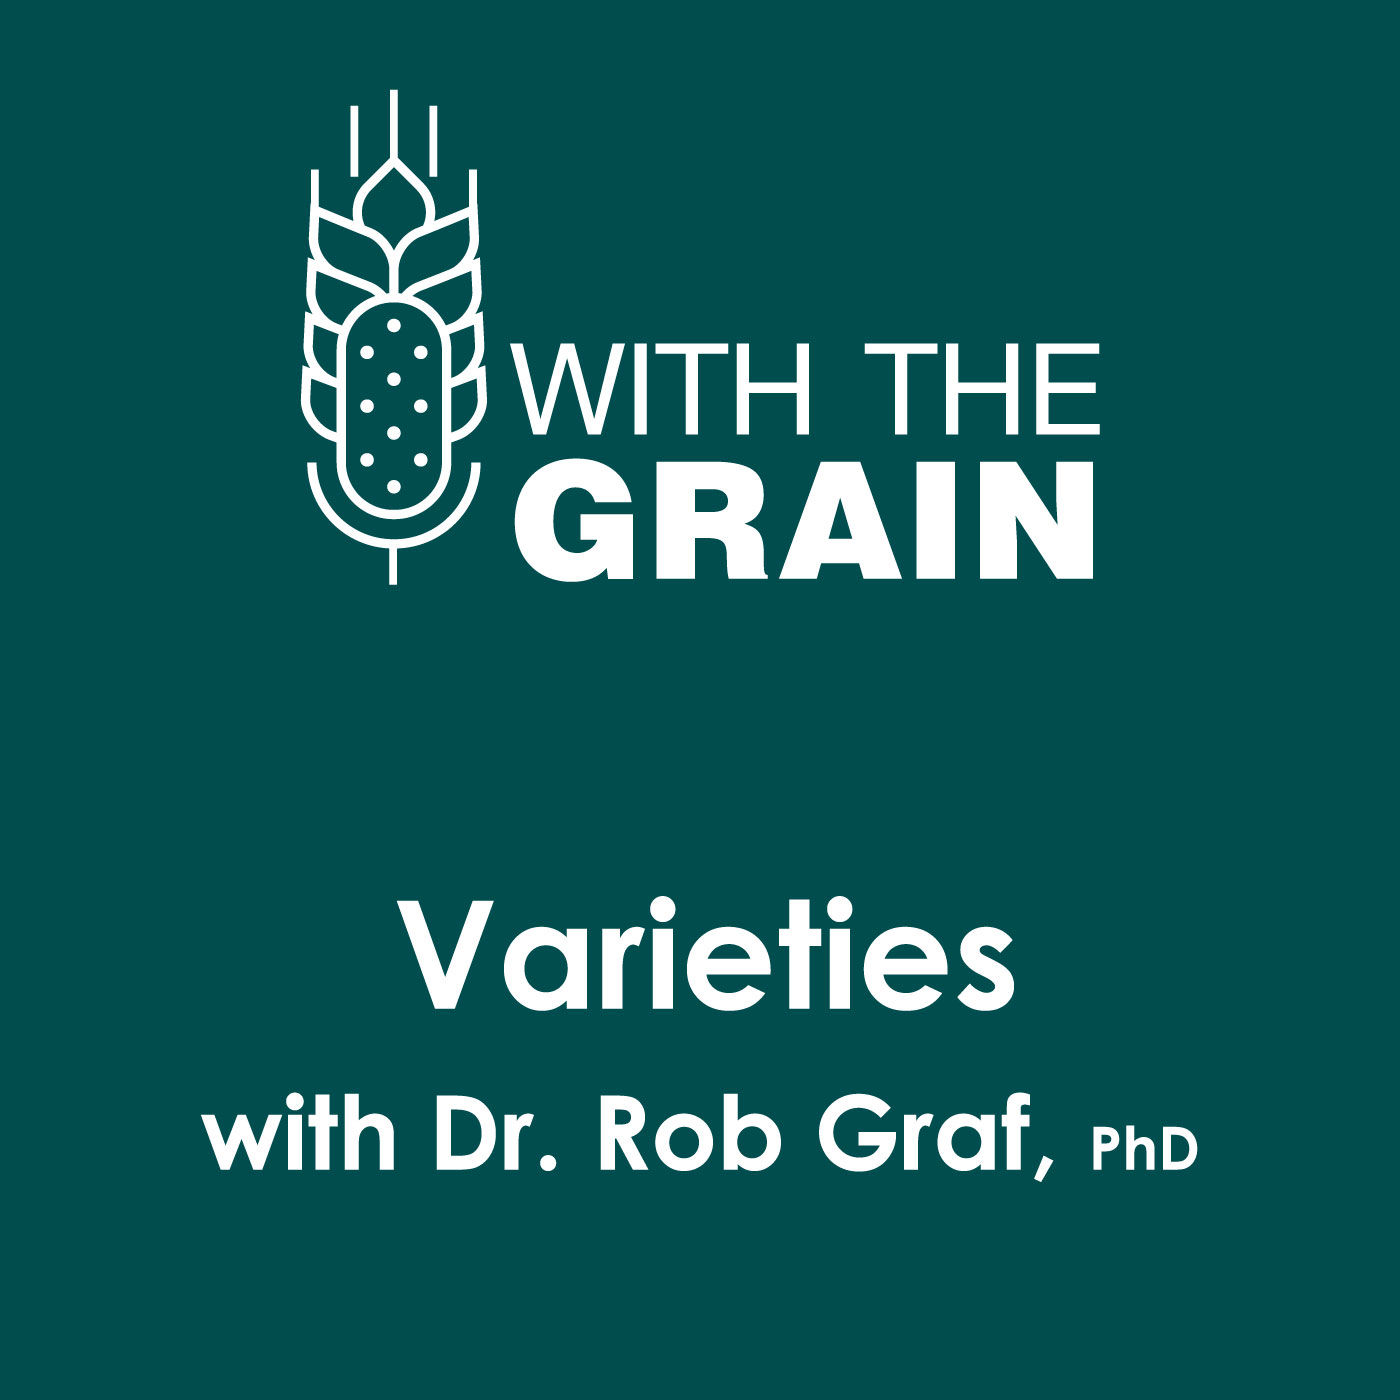 Varieties of Winter Wheat, with Dr. Robert Graf